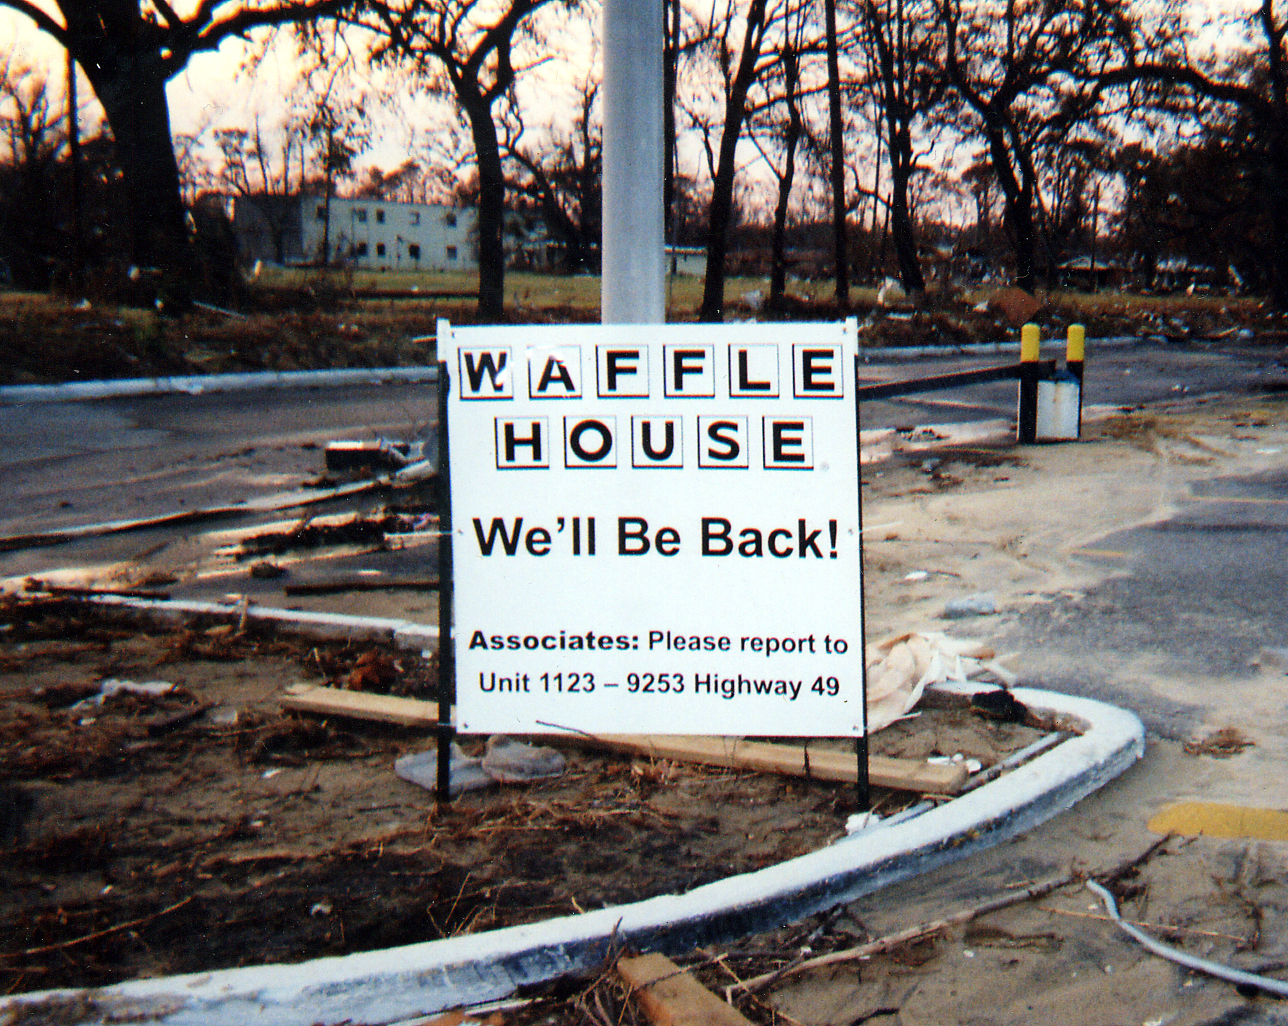 Waffle House will be back soon